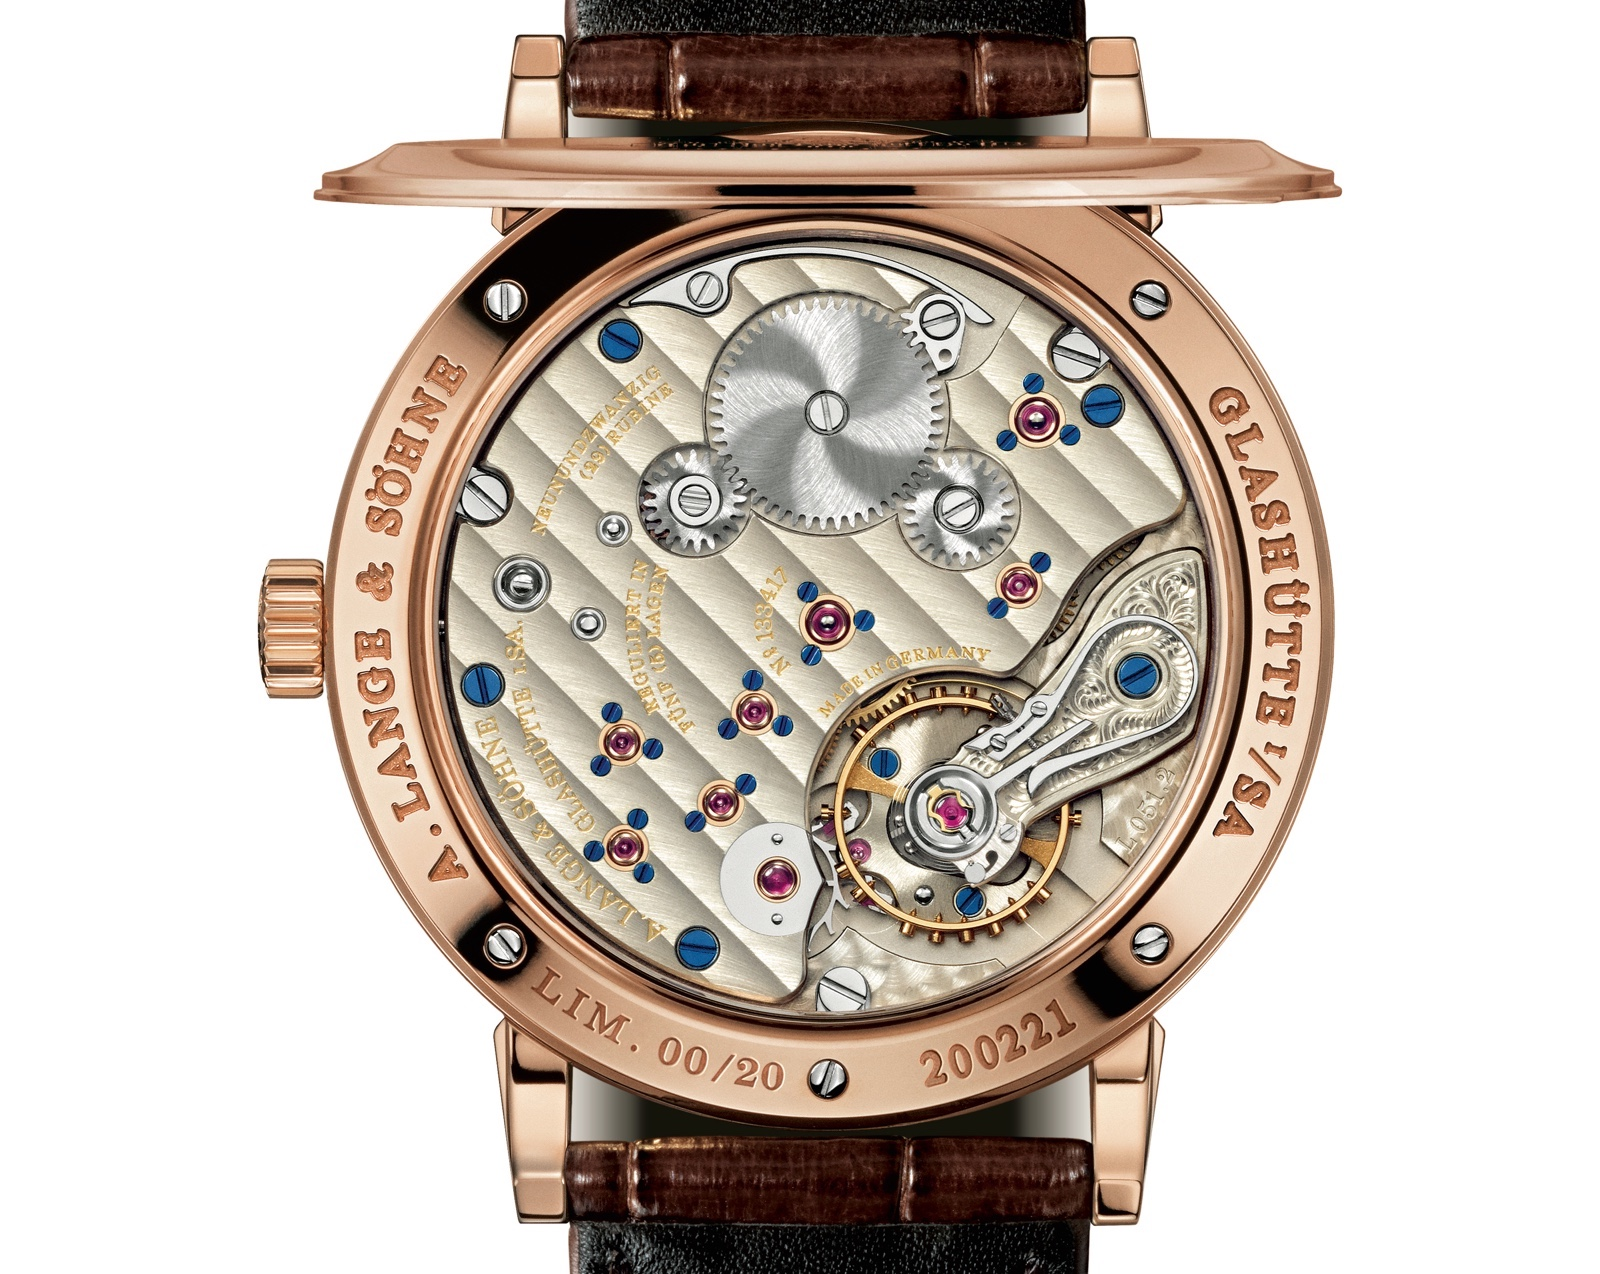 Lange 1815 Up Down 75 Años Suarez Caseback